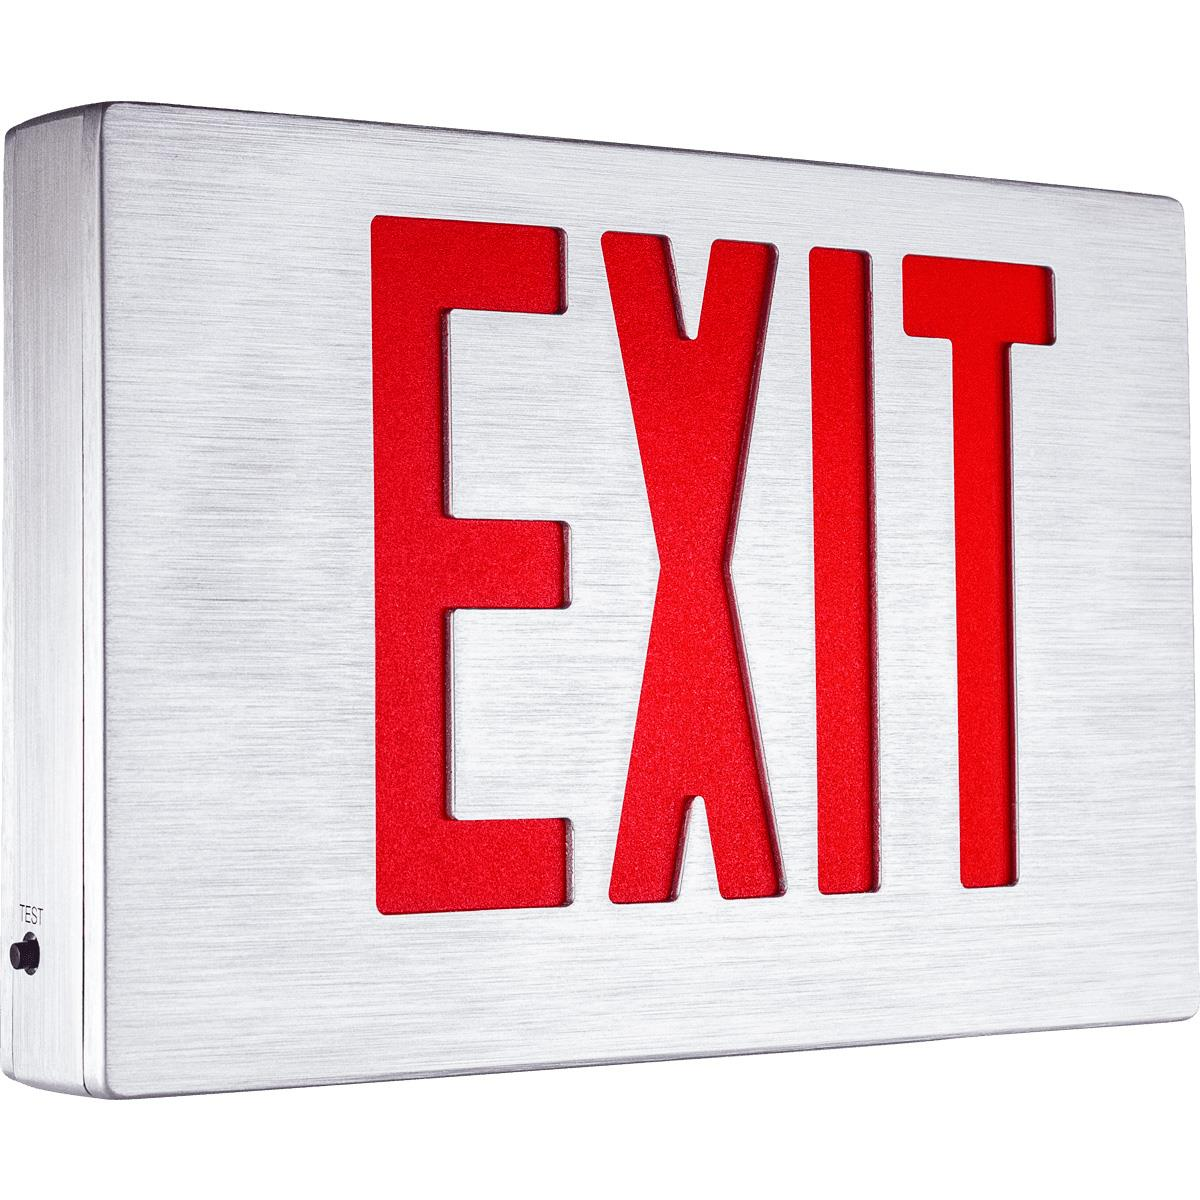 Alumaxus Exit Sign With Durable and Stylish Housing Series EEAE